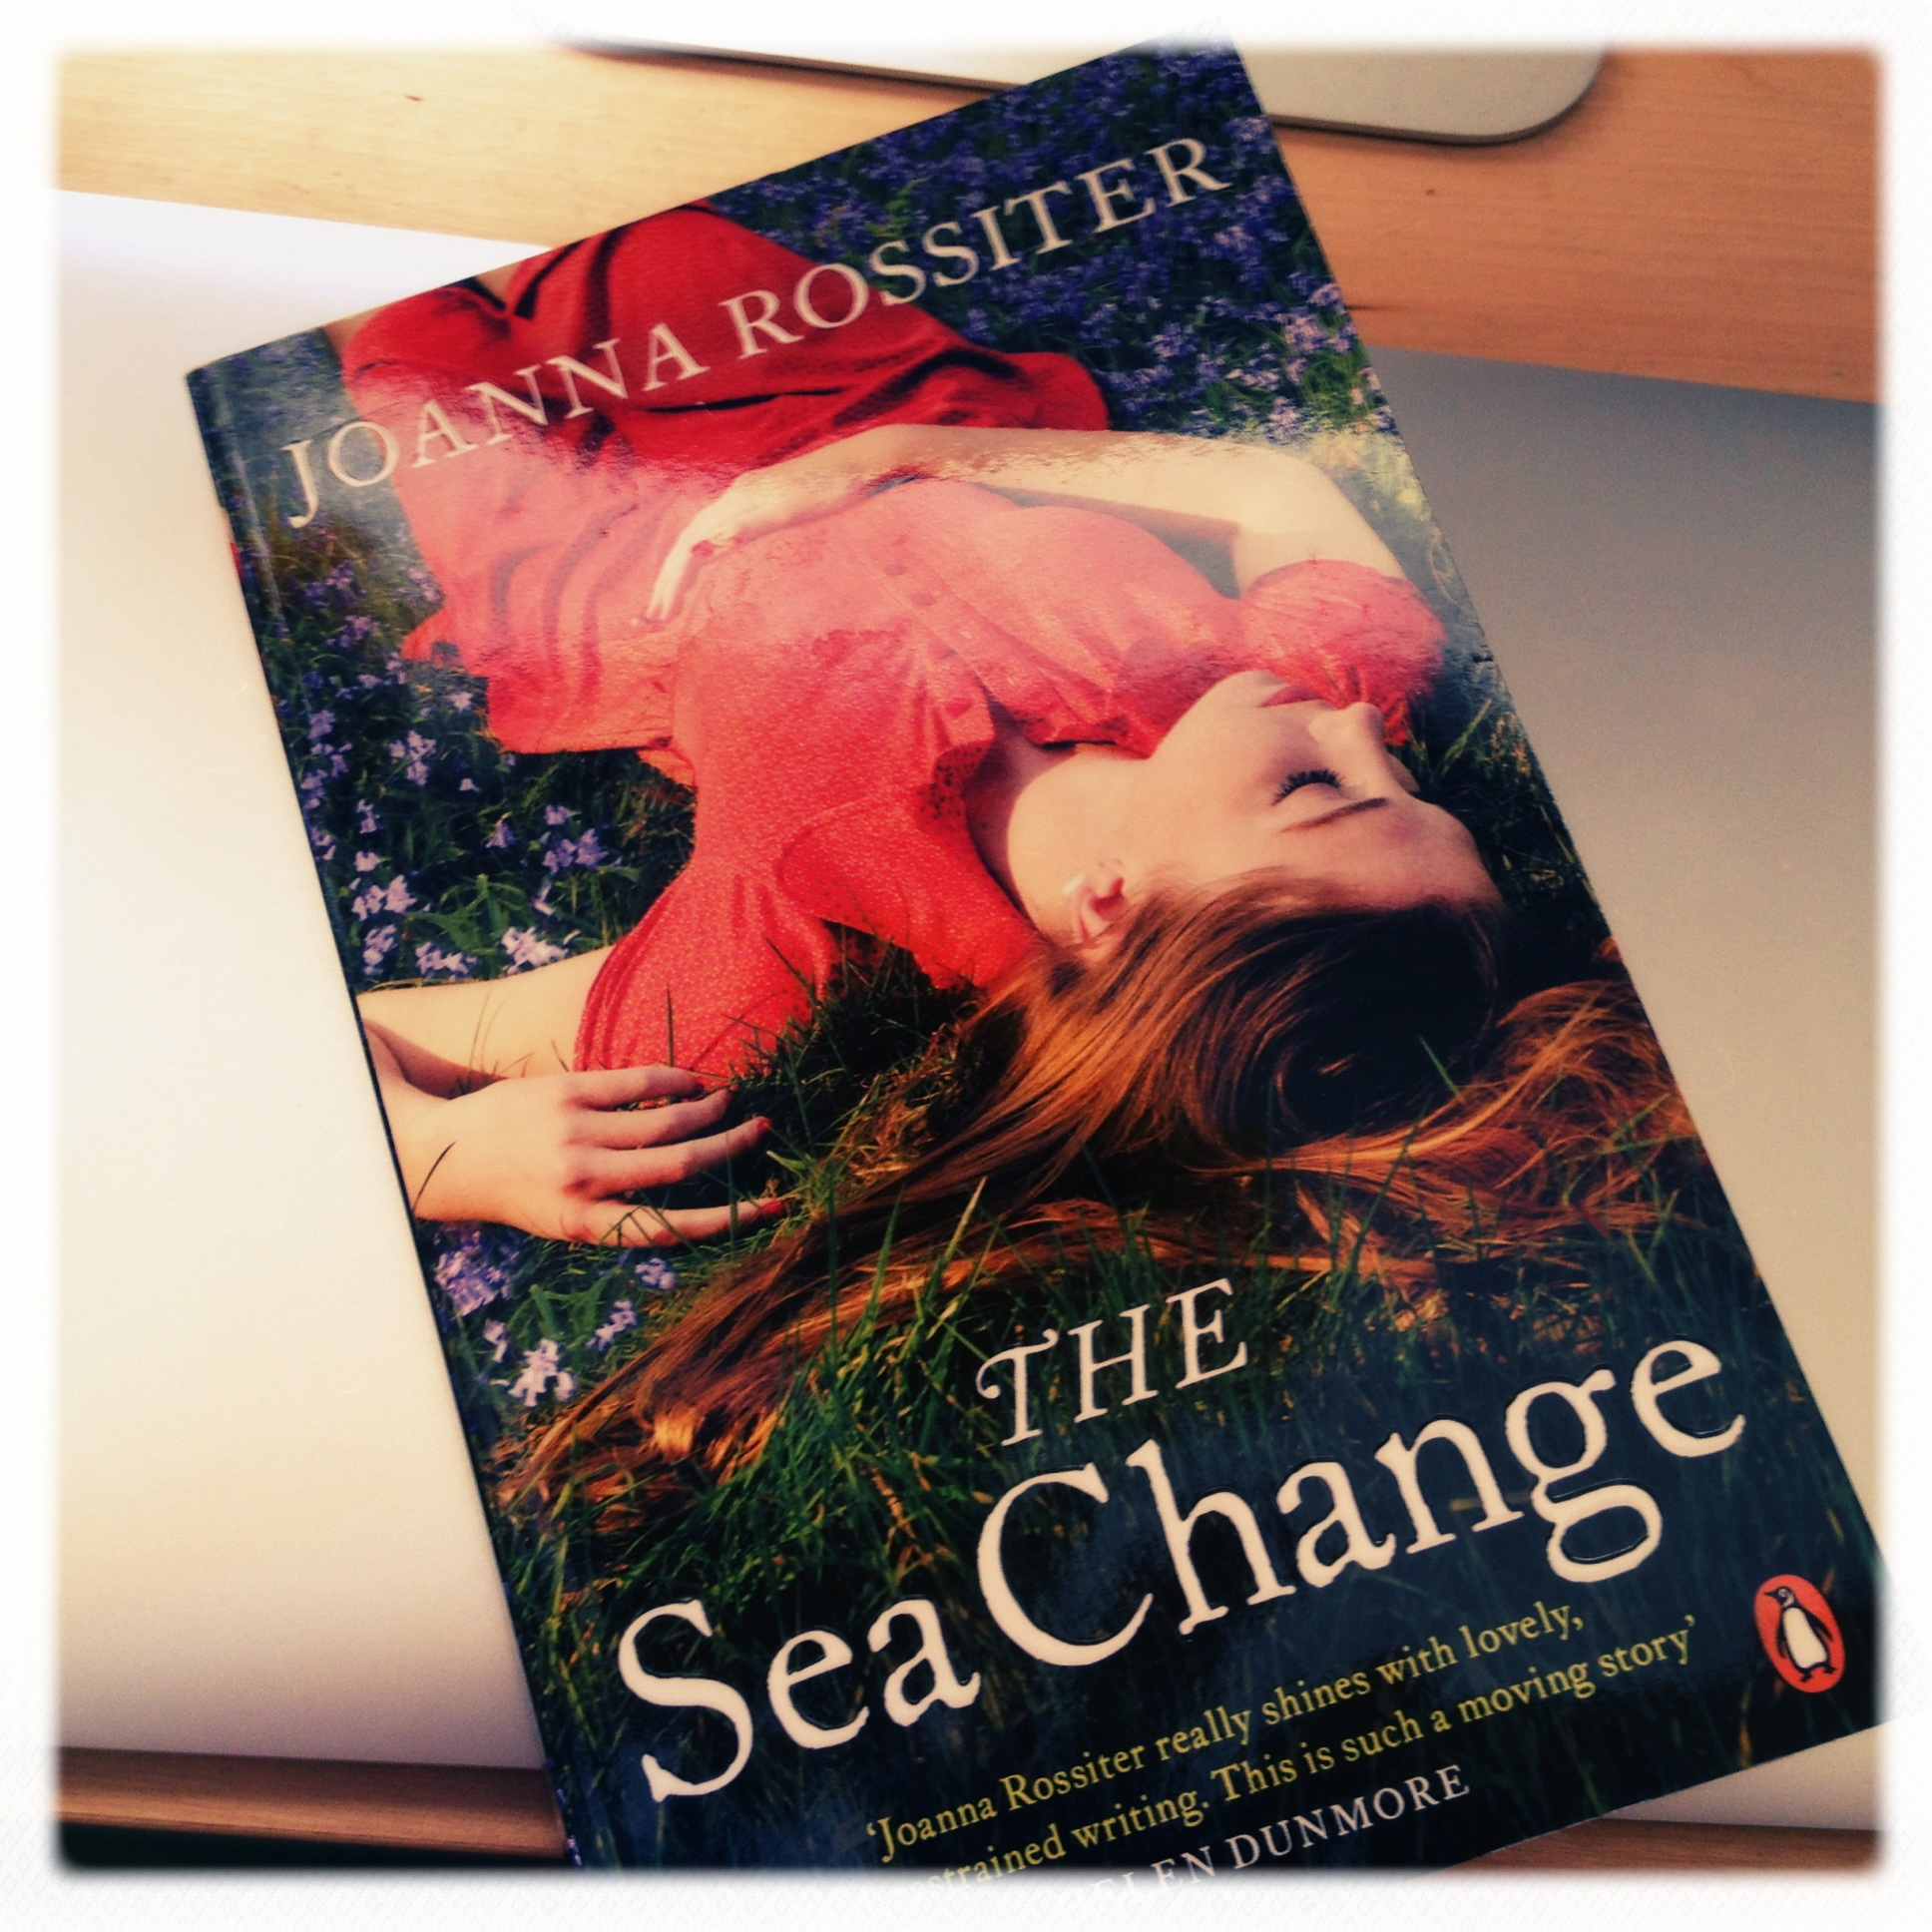 Review: The Sea Change by Joanna Rossiter